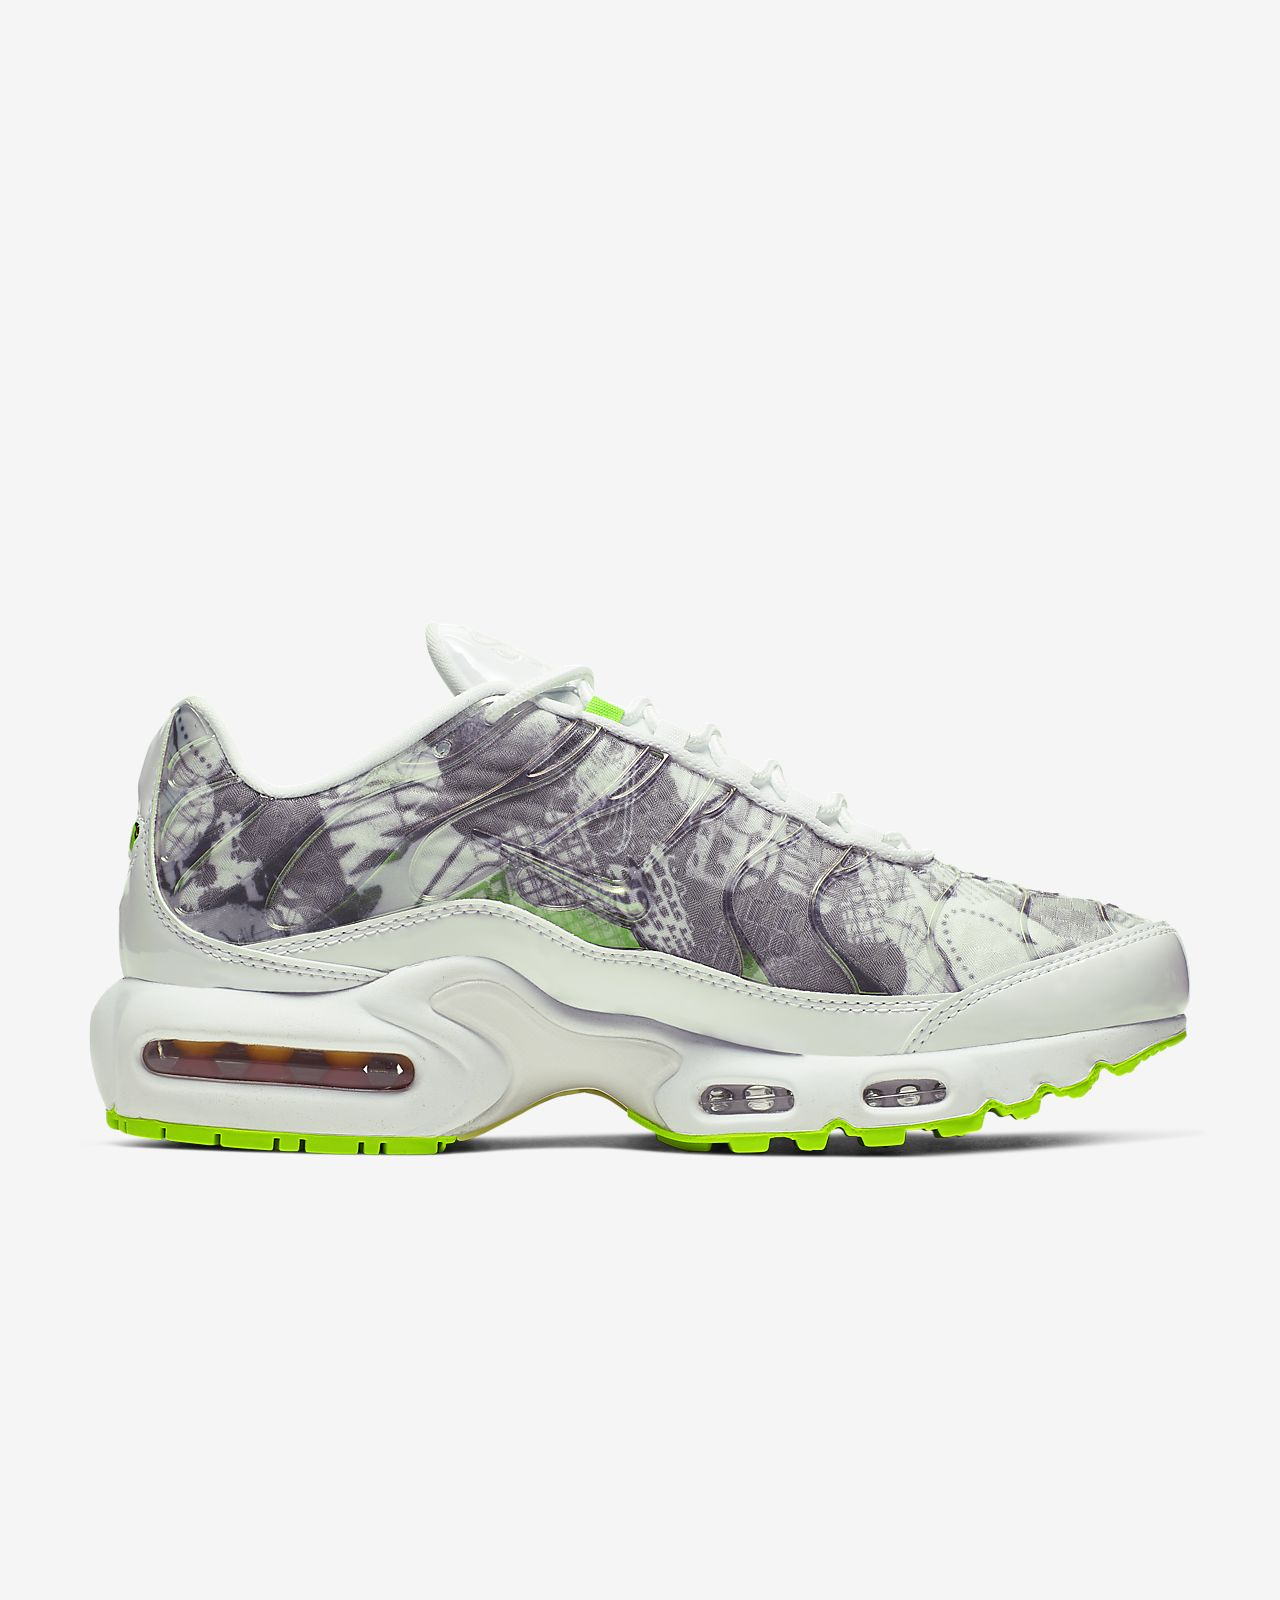 nike air max plus tn hvit lær